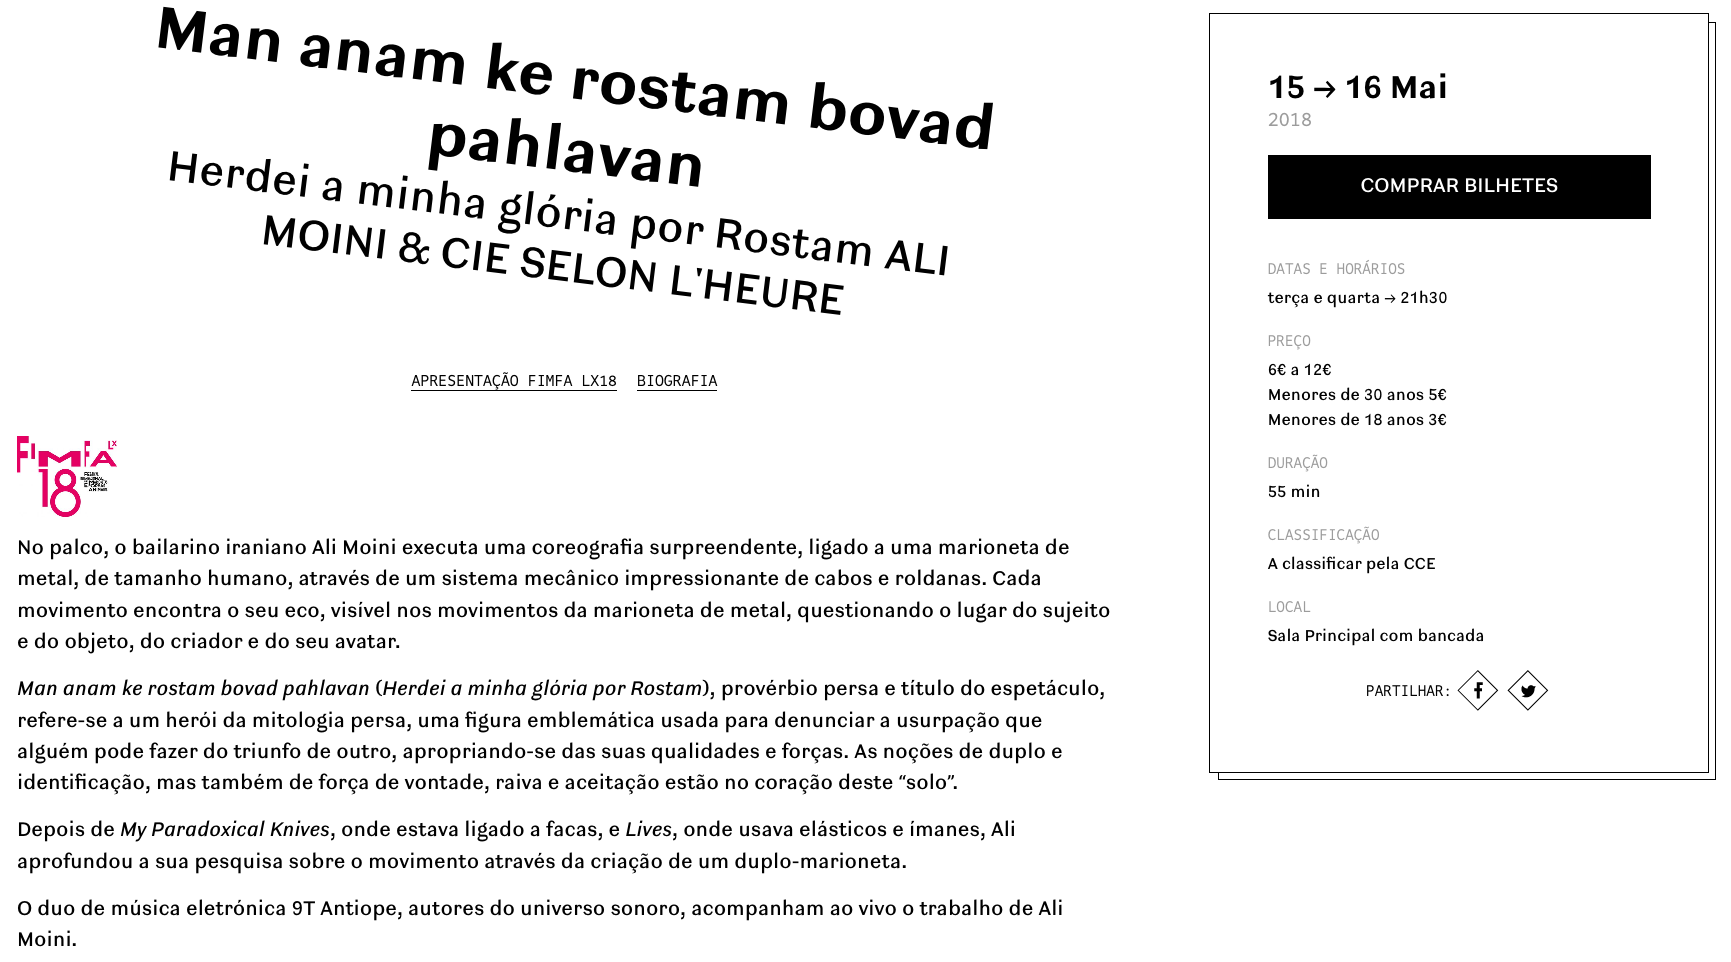 Screenshot-2018-4-27 Man anam ke rostam bovad pahlavan 15 → 16 May